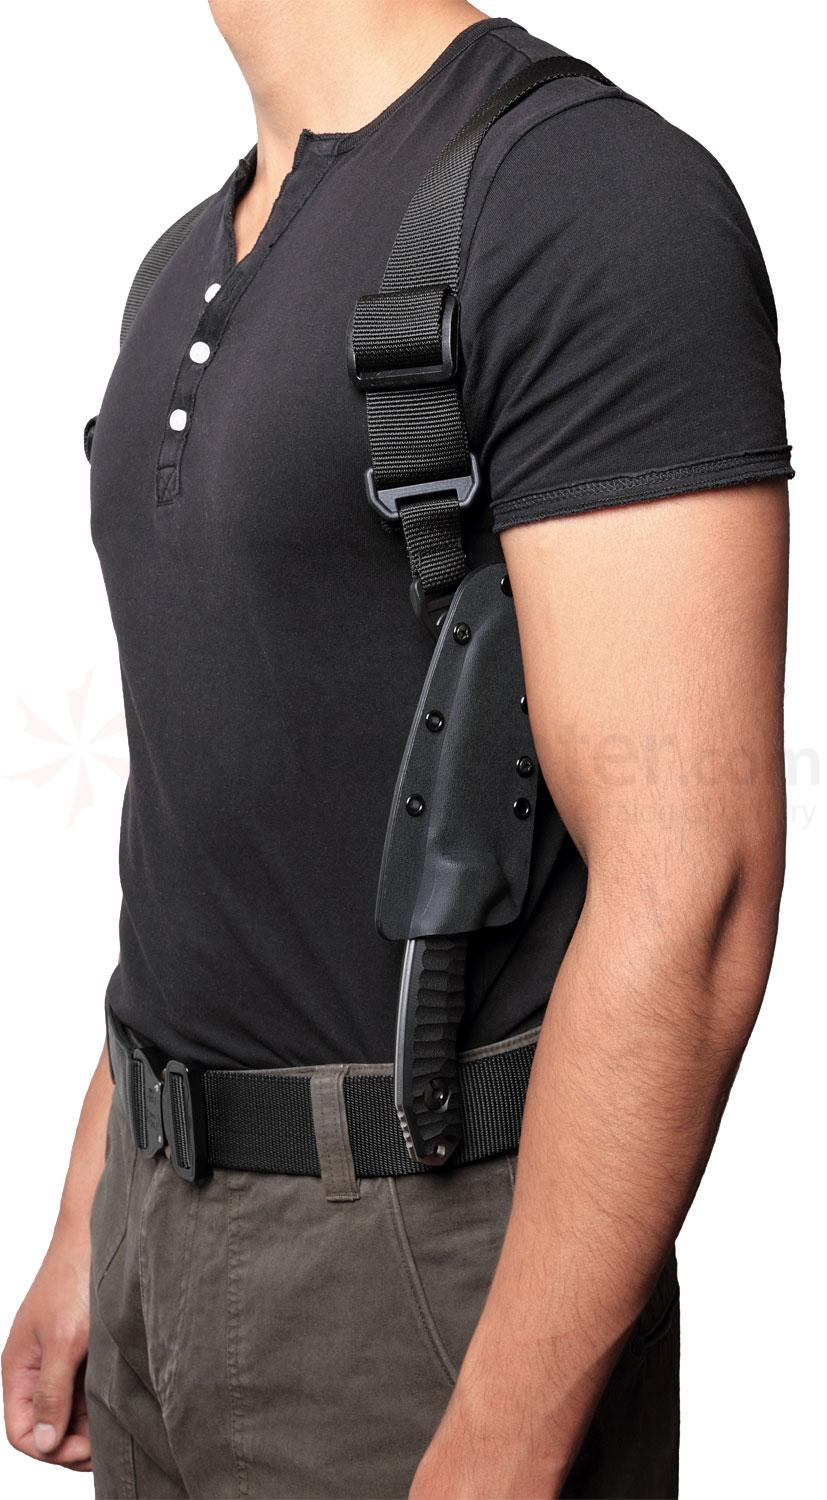 Pohl Force Shoulder Harness, Compatible with All Kydex Sheaths ...